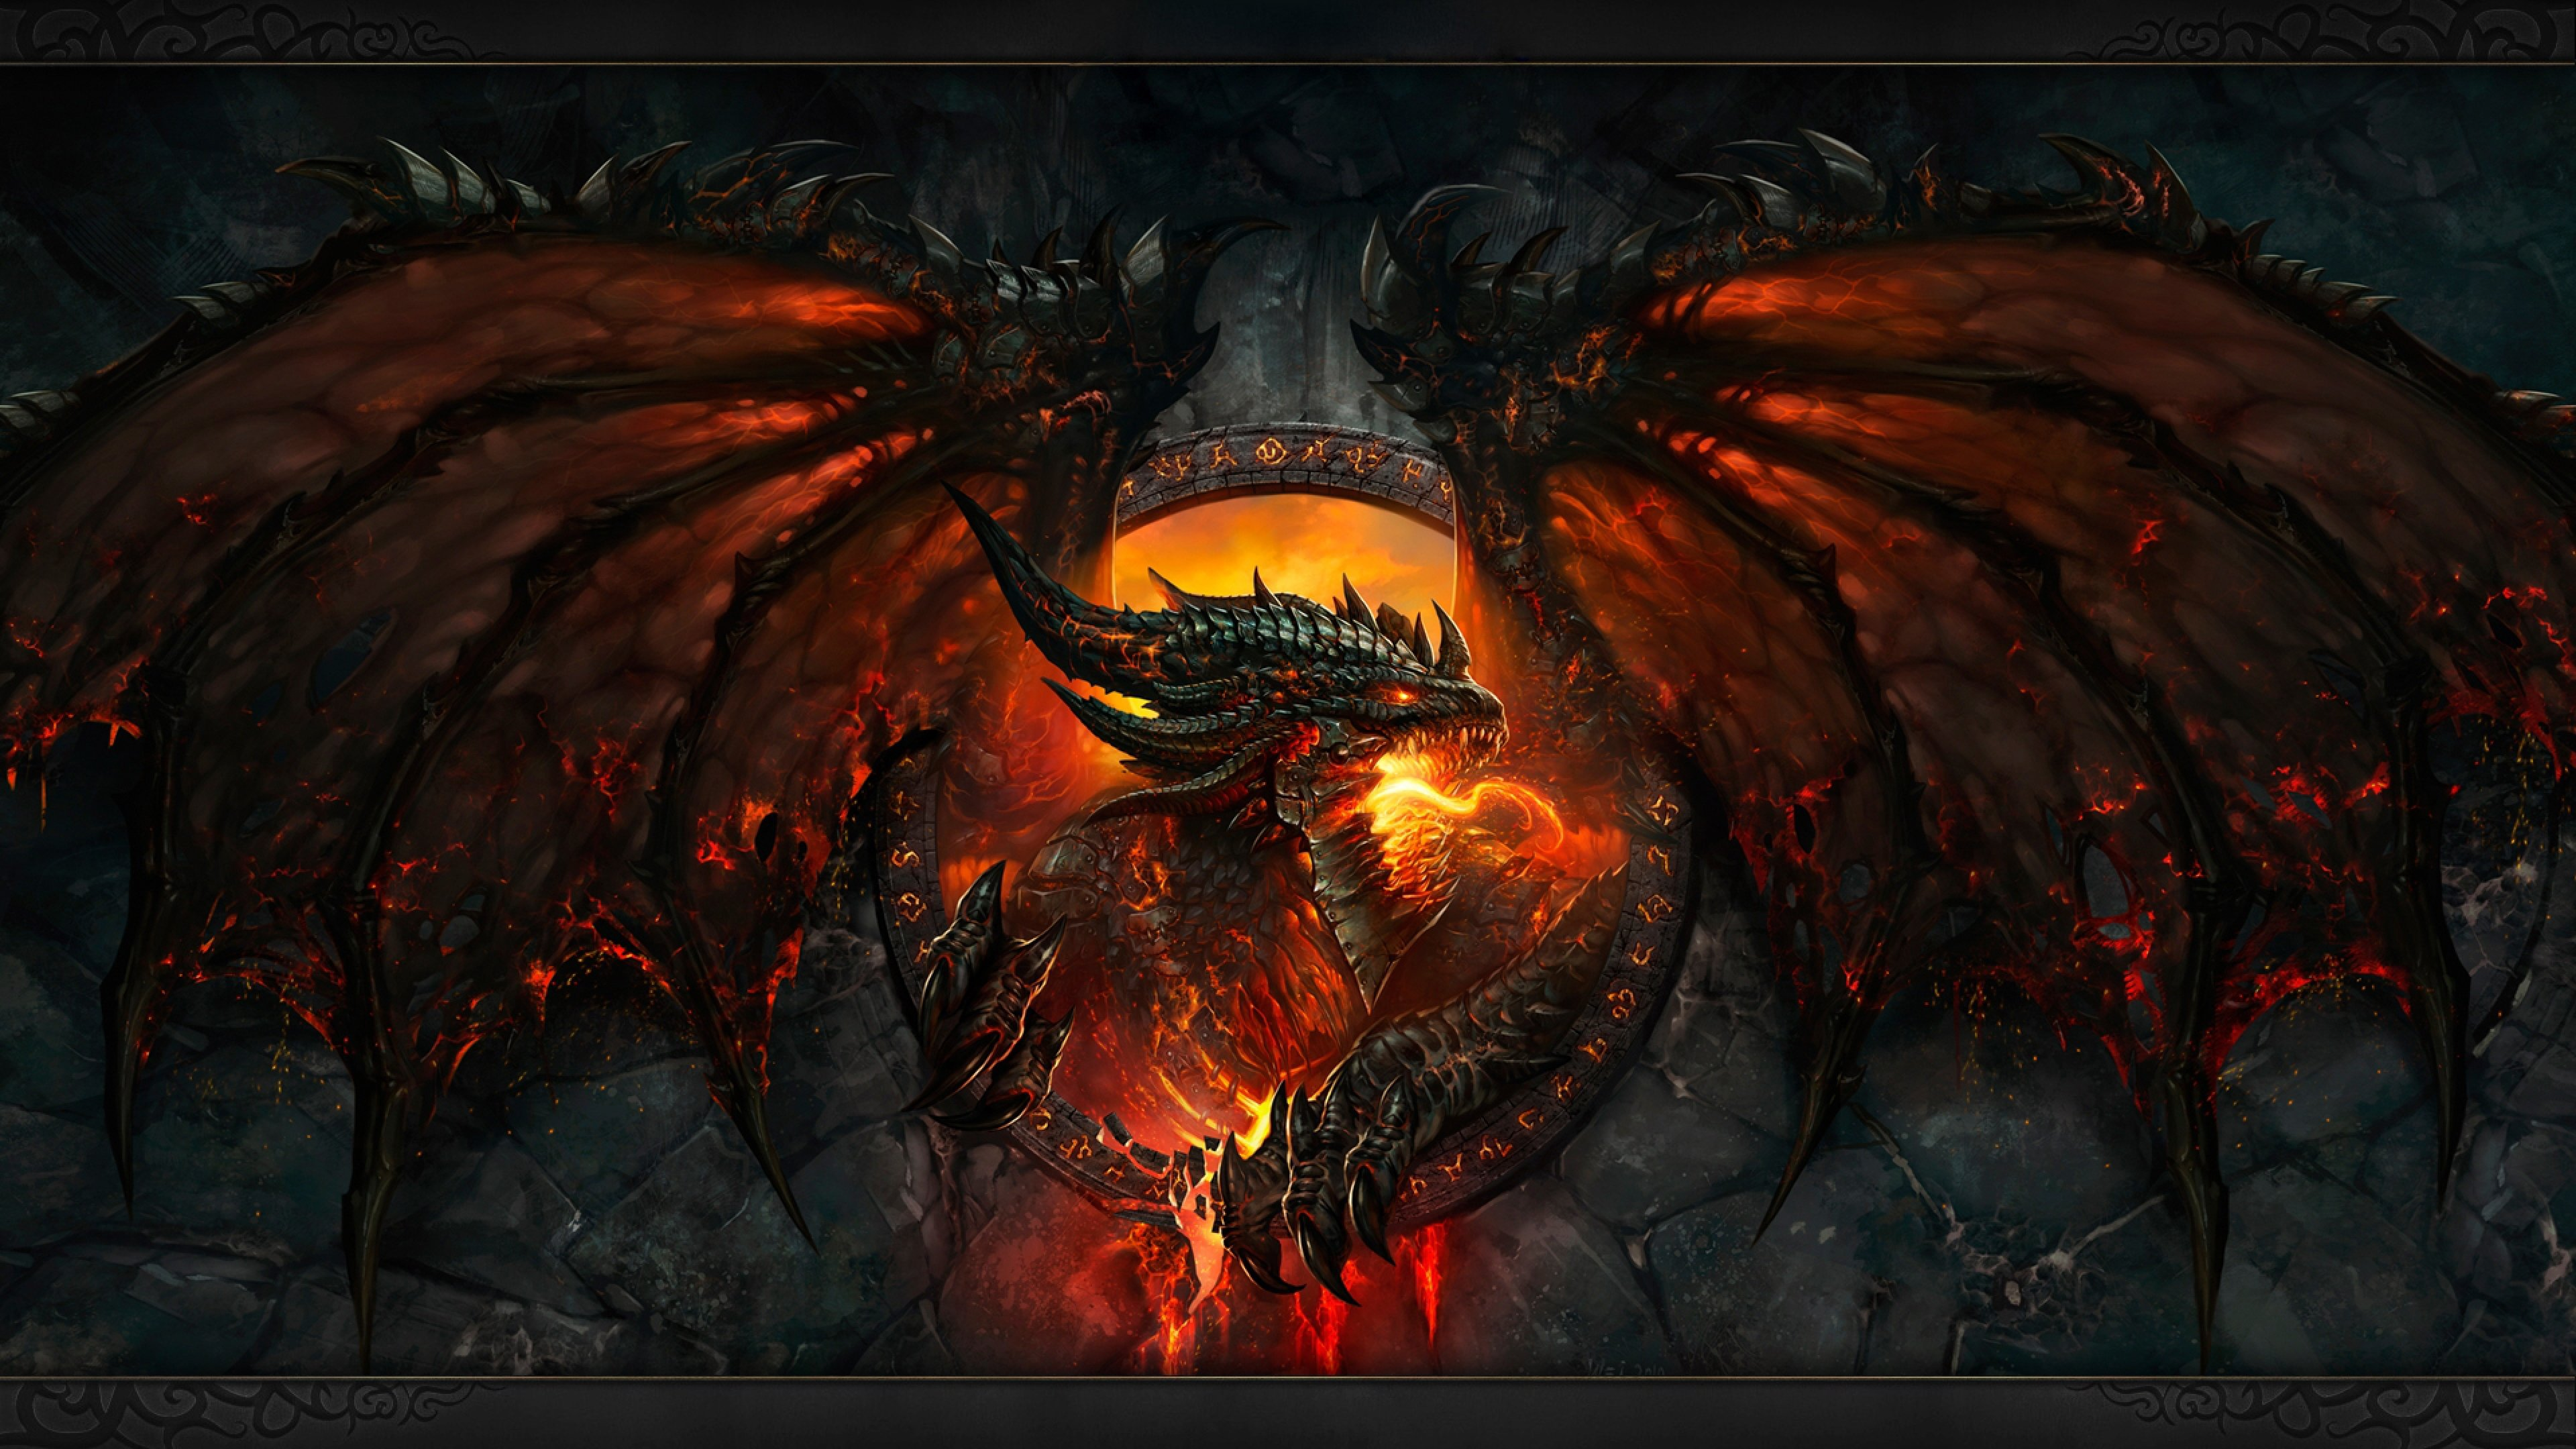 45+] 4K Dragon Wallpaper on WallpaperSafari